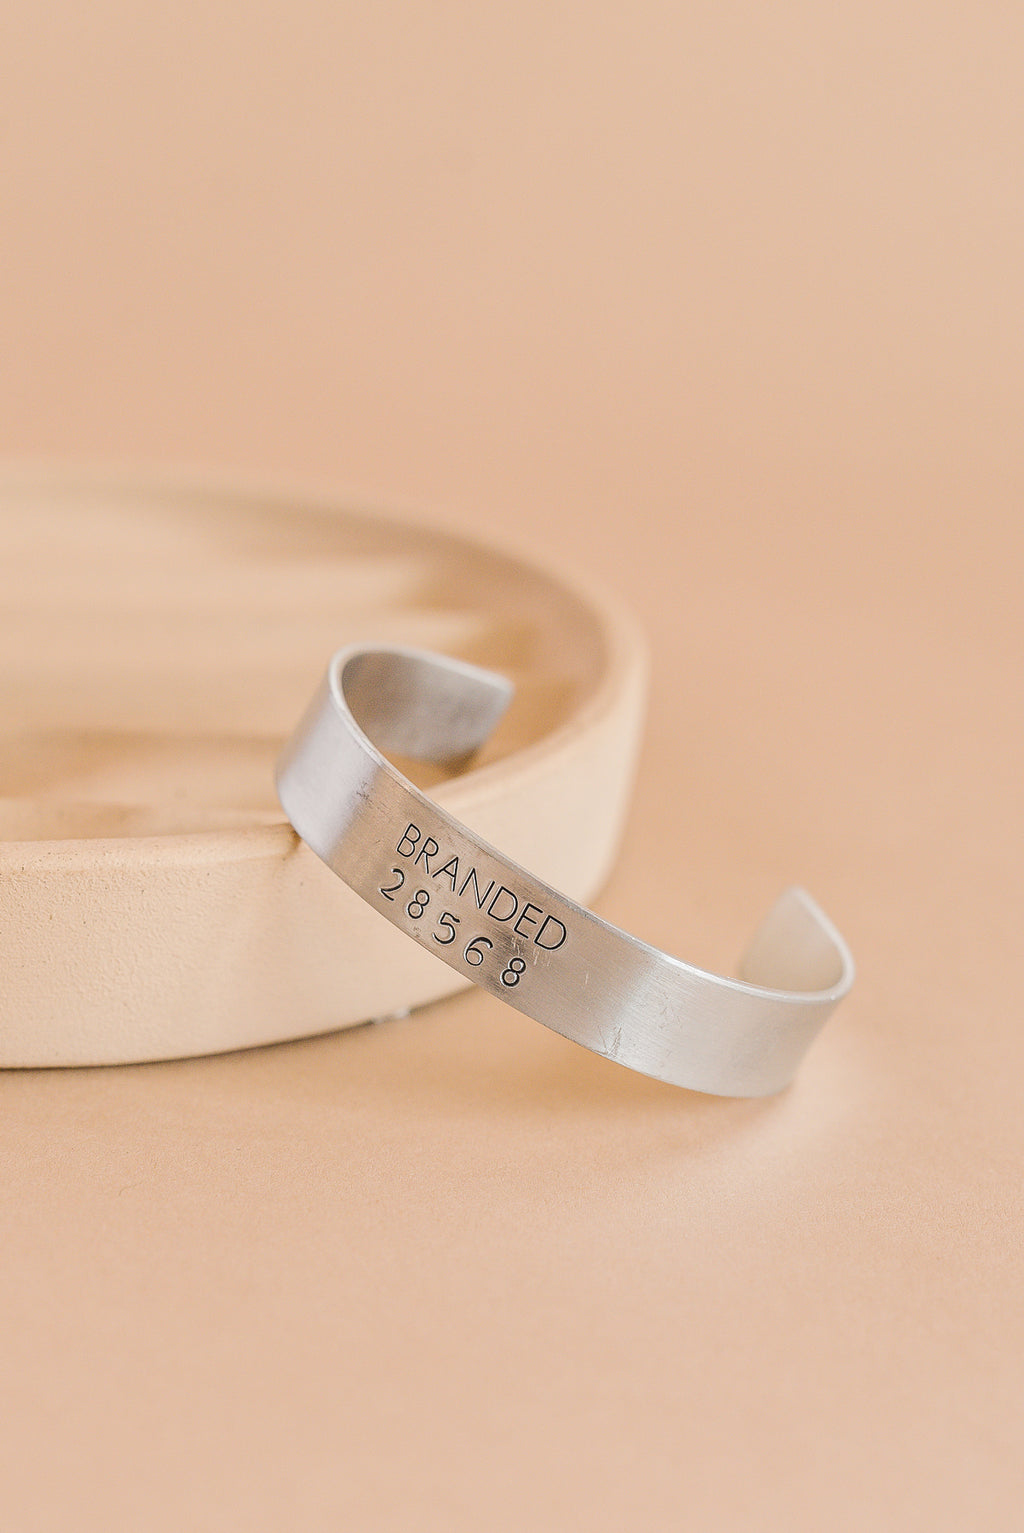 Small Aluminum Branded Cuff